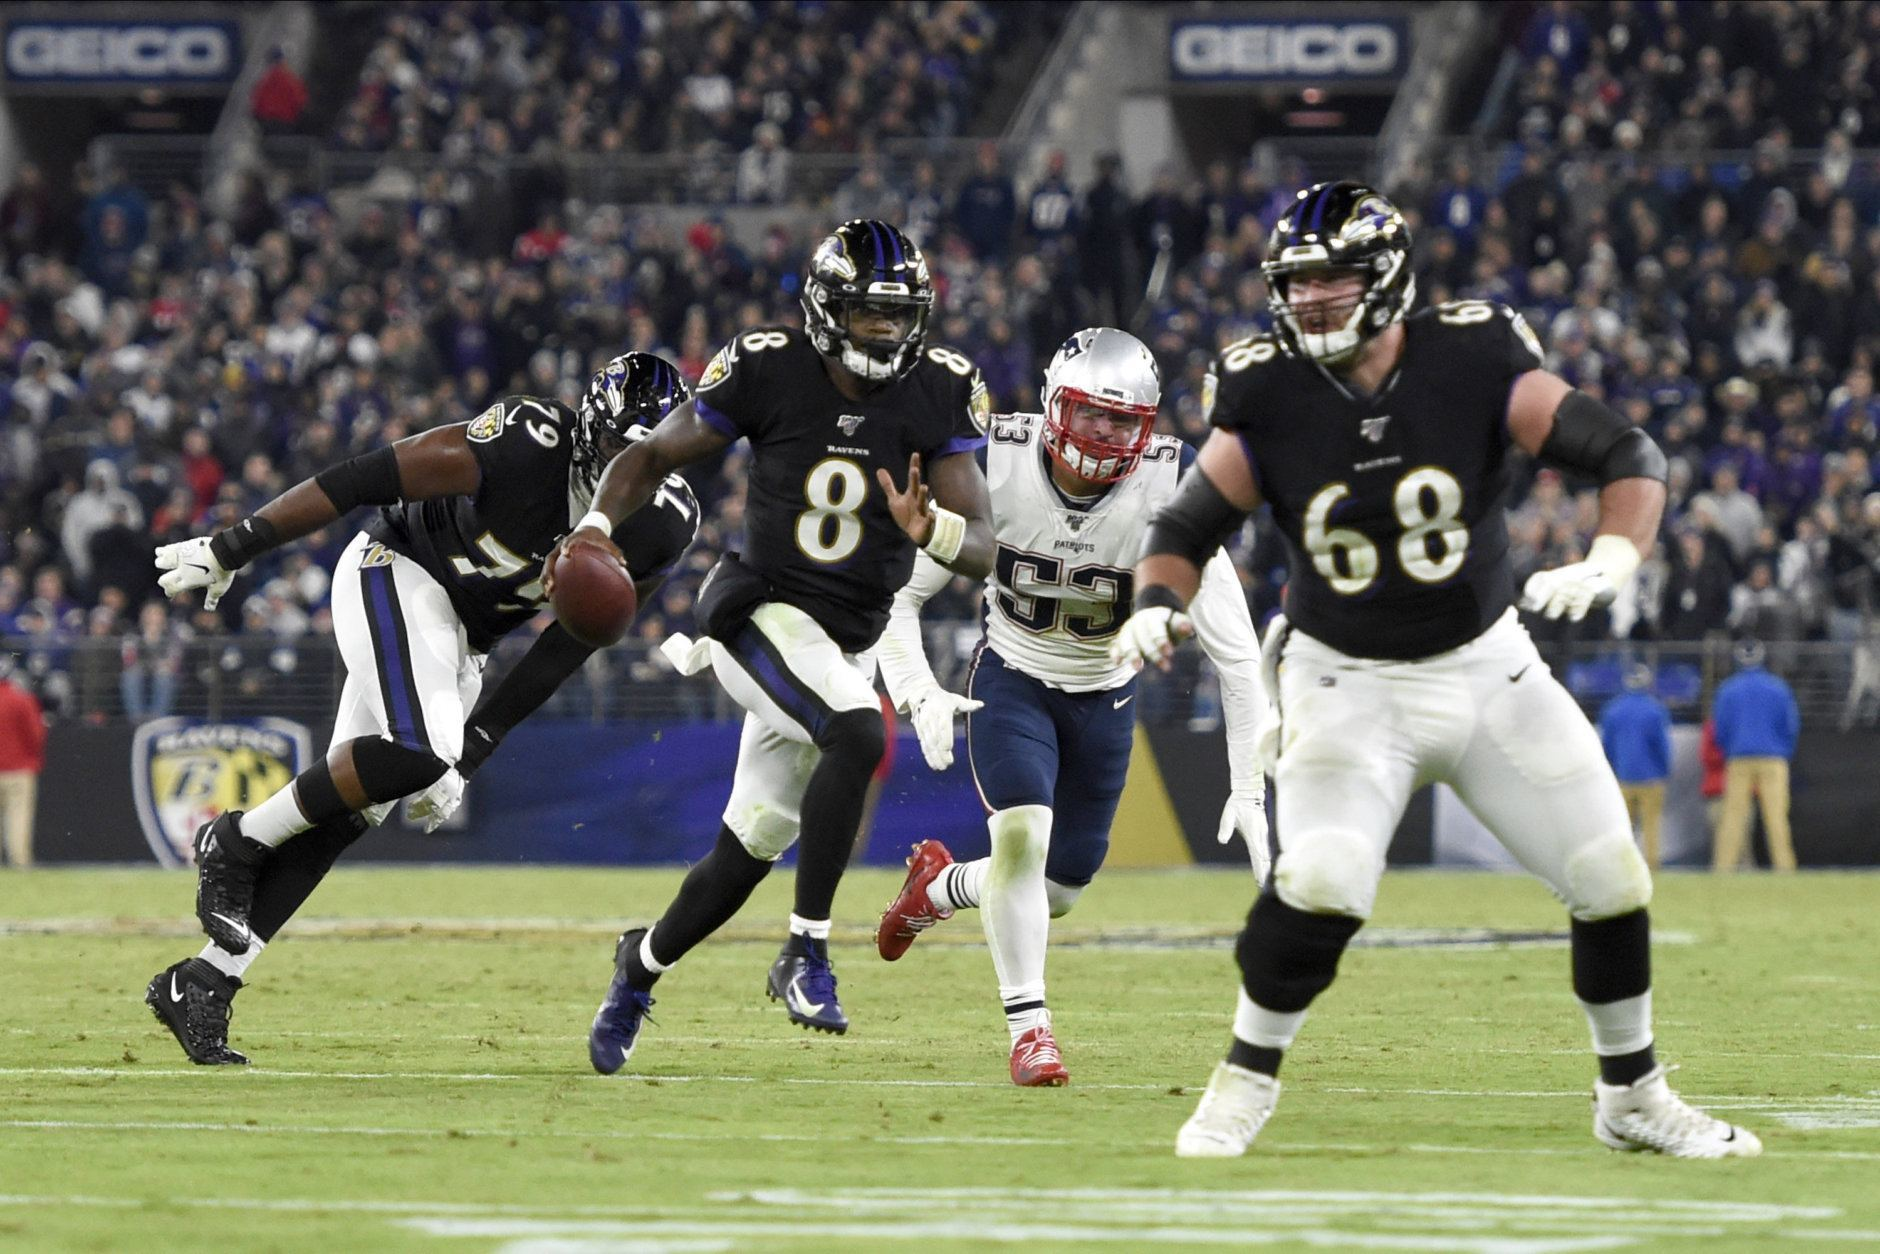 """<p><b><i>Patriots 20</i></b><br /> <b><i>Ravens 37</i></b></p> <p>How unlikely was this result? New England won 16 straight regular season games, facing a starting QB for the first time and 20 straight against a QB age 24 or younger. As <a href=""""https://profootballtalk.nbcsports.com/2019/10/28/bill-belichick-on-lamar-jackson-hes-definitely-a-problem/"""">Bill Belichick predicted</a>, the 22-year-old Lamar Jackson changed that by lighting up the Patriots defense — which previously allowed only seven points per game this season — by air and ground to simultaneously get himself in the MVP conversation and Baltimore in the discussion for AFC title contenders. It feels like we&#8217;ll see this match up again in the playoffs.</p>"""